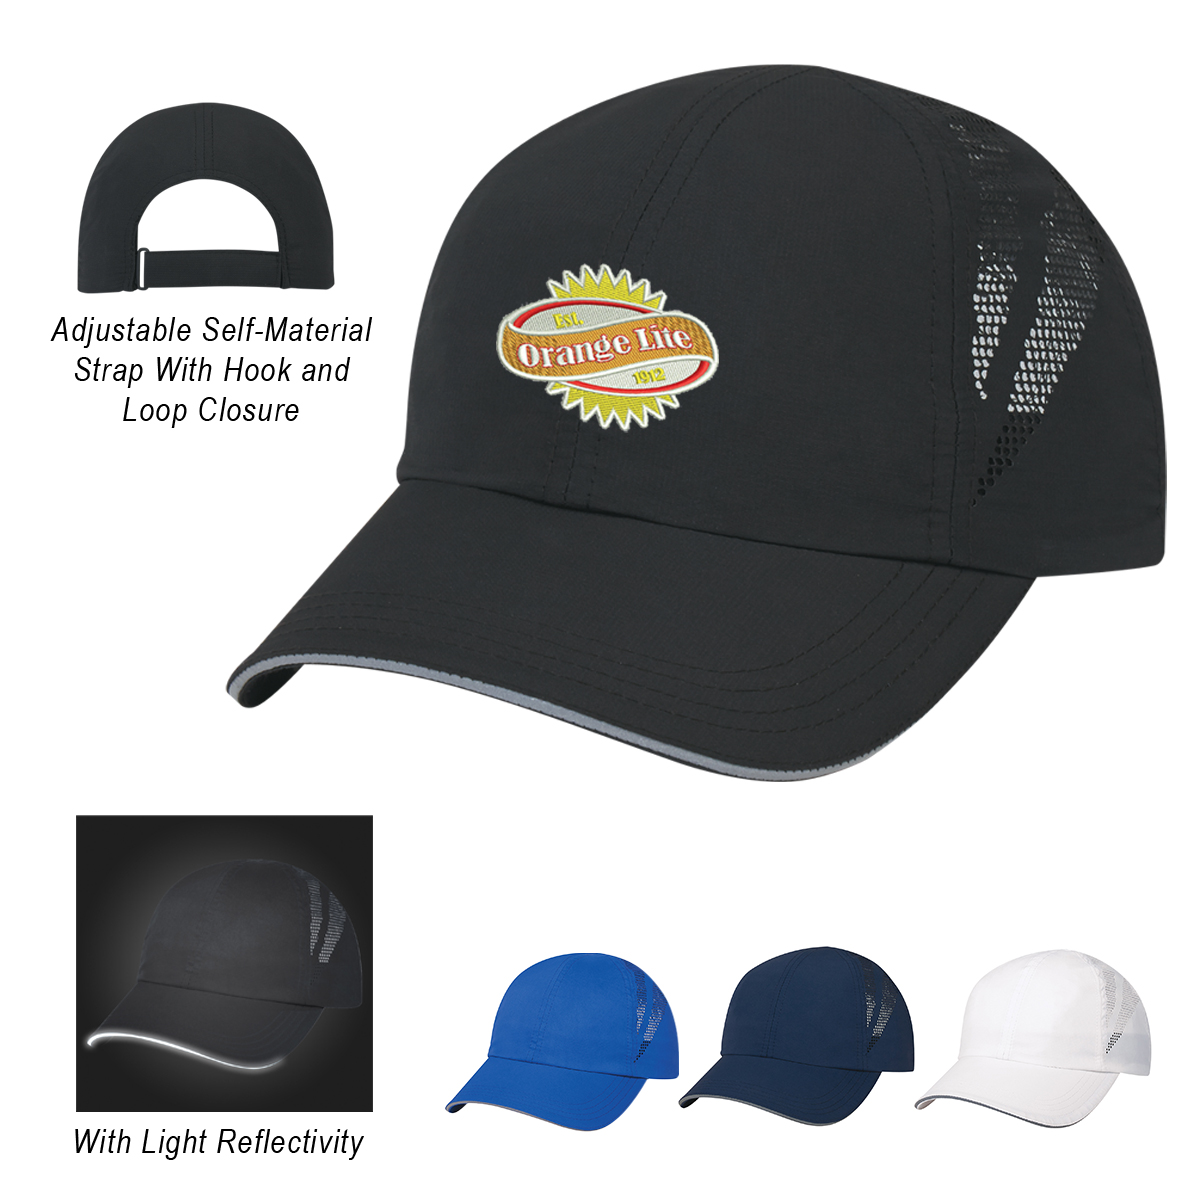 194265188-816 - Sports Performance Sandwich Cap - thumbnail